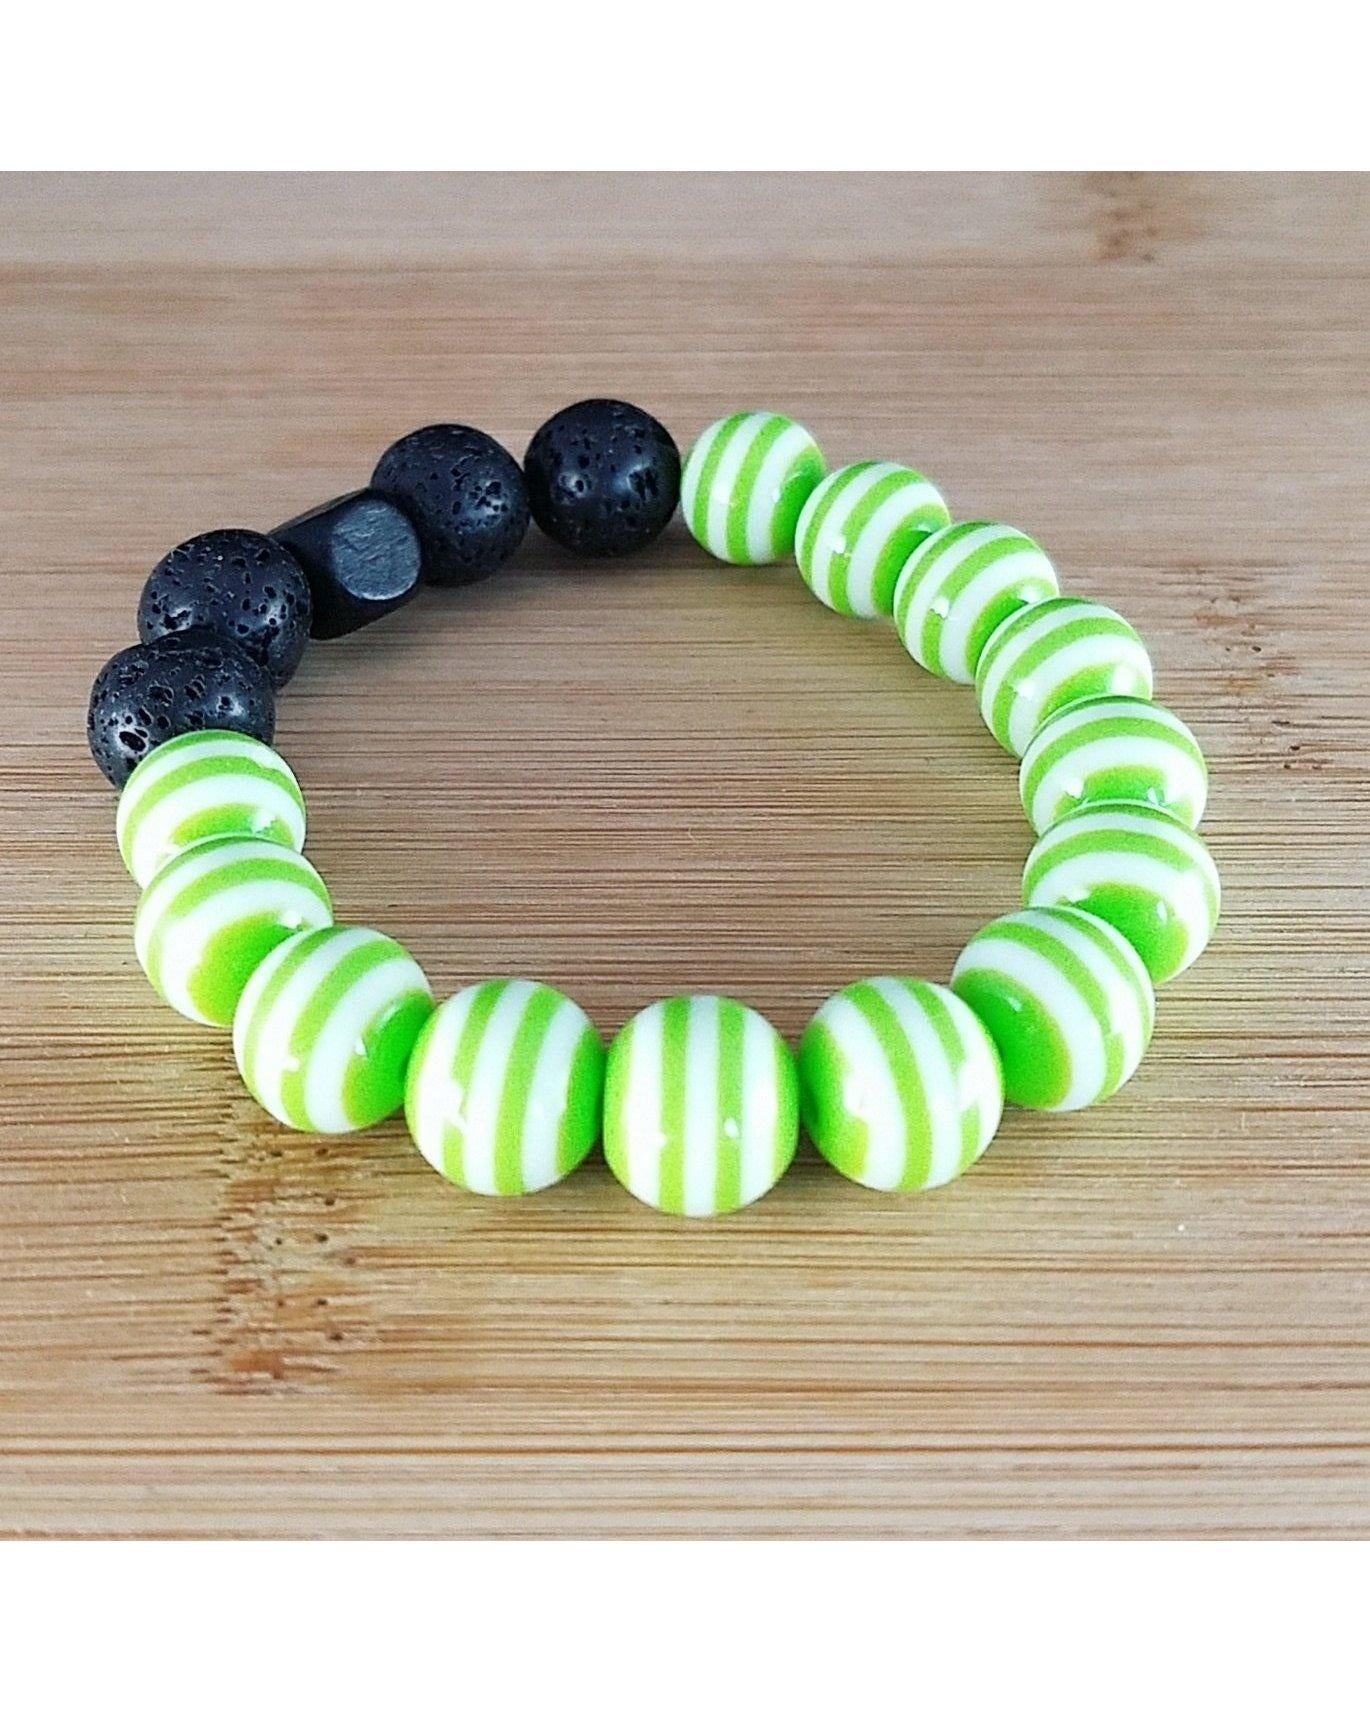 Girls/Kids/Boys Lime Green and White Striped and Lava Rock 10mm Bead Essential Oil Aromatherapy Diffuser Stretch Bracelet K035 - Essentially Elegant